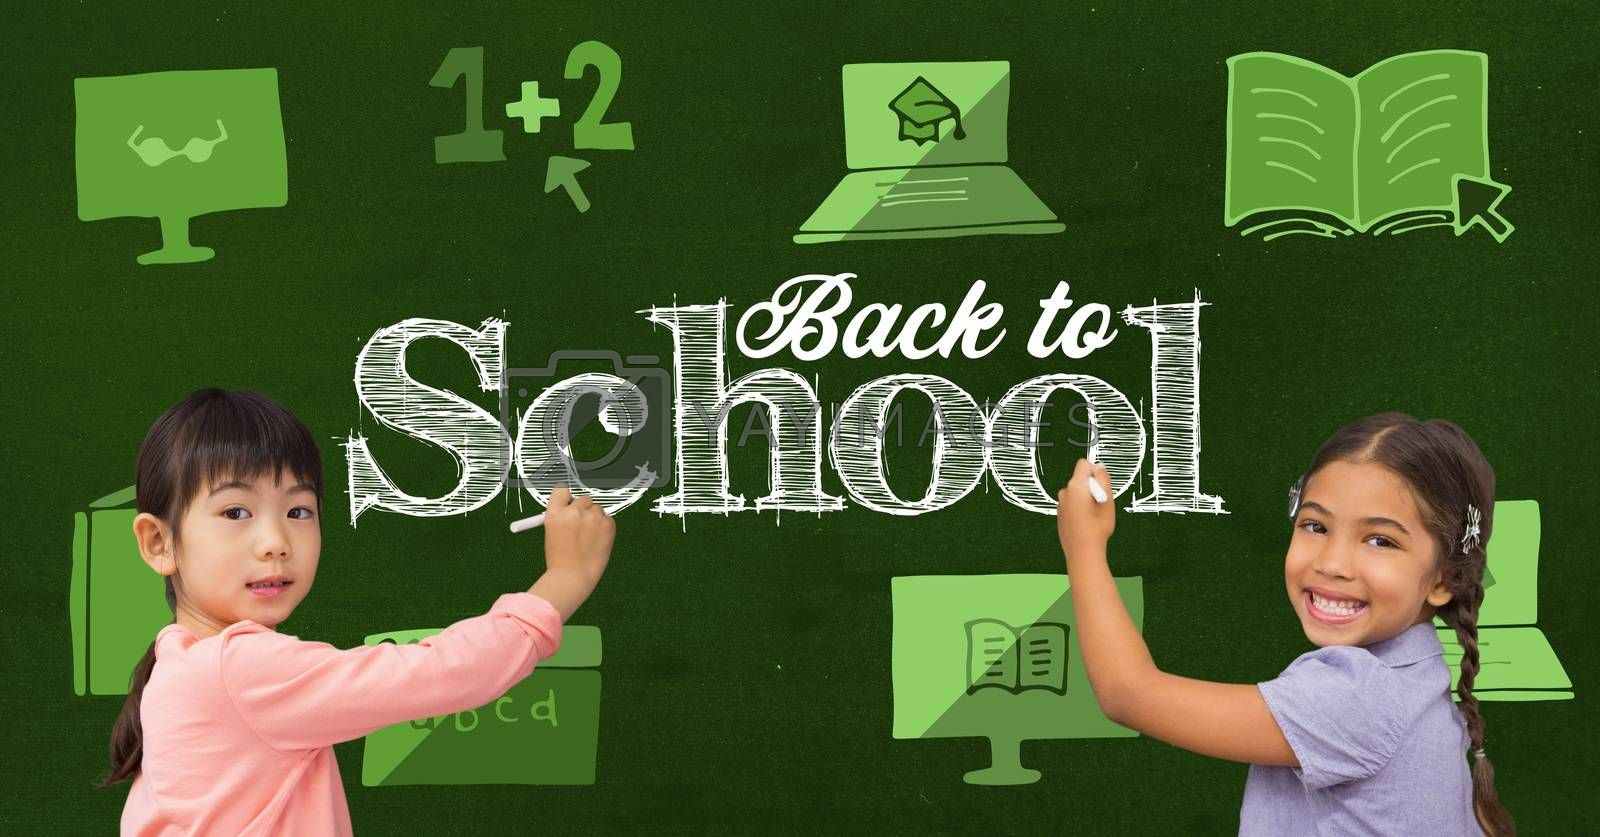 Digital composite of Schoolgirls writing Back to school text with online e-learning graphics